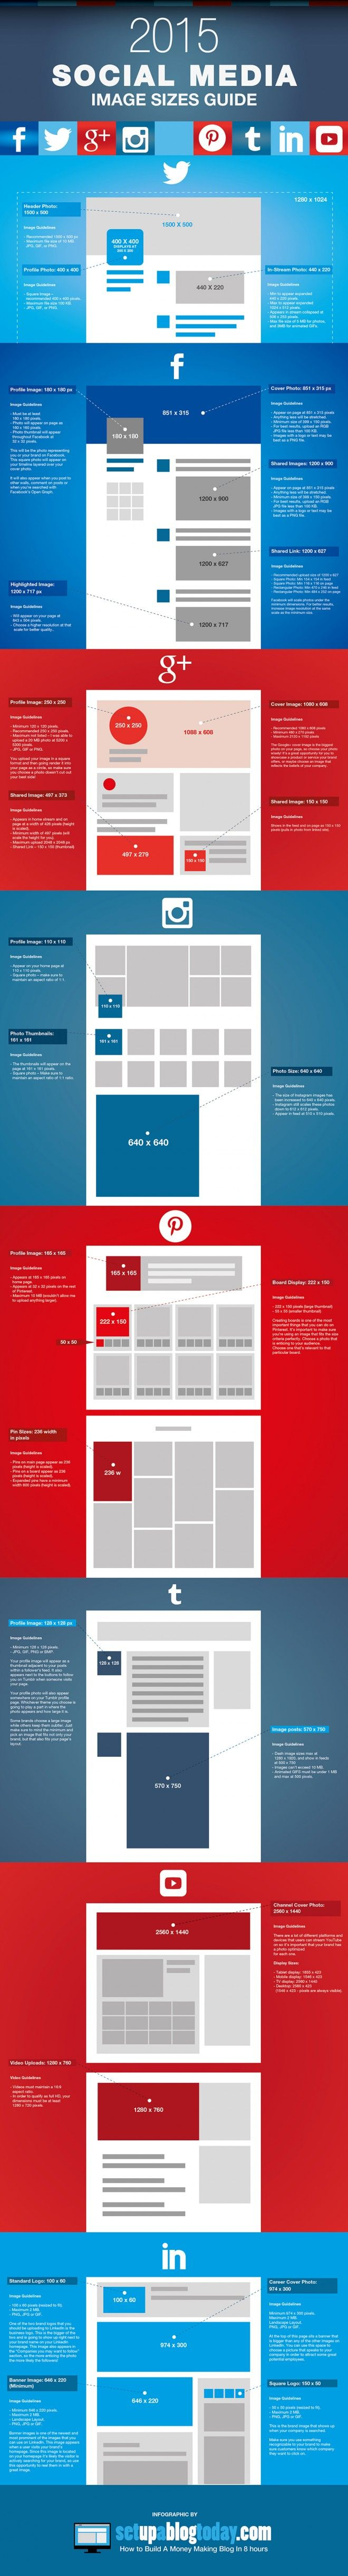 The Essential Cheat Sheet for Social Media Image Sizes